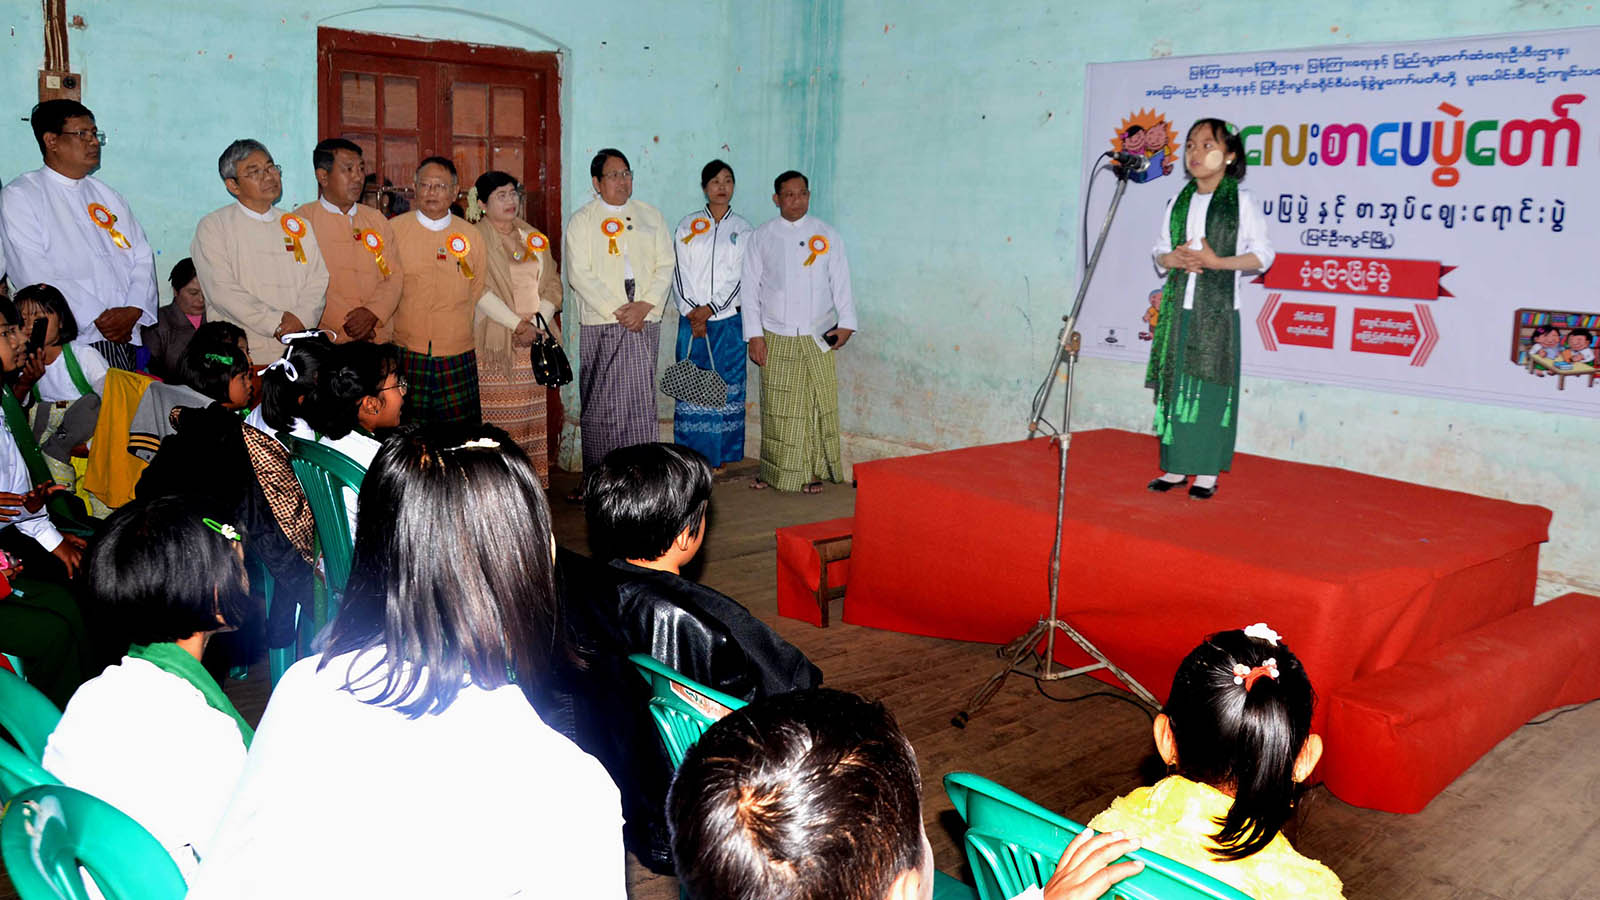 Union Minister Dr Pe Myint and party observe student competing in the storytelling contest at the opening ceremony of Children's Literary Festival in PyinOoLwin yesterday.Photo: MNA